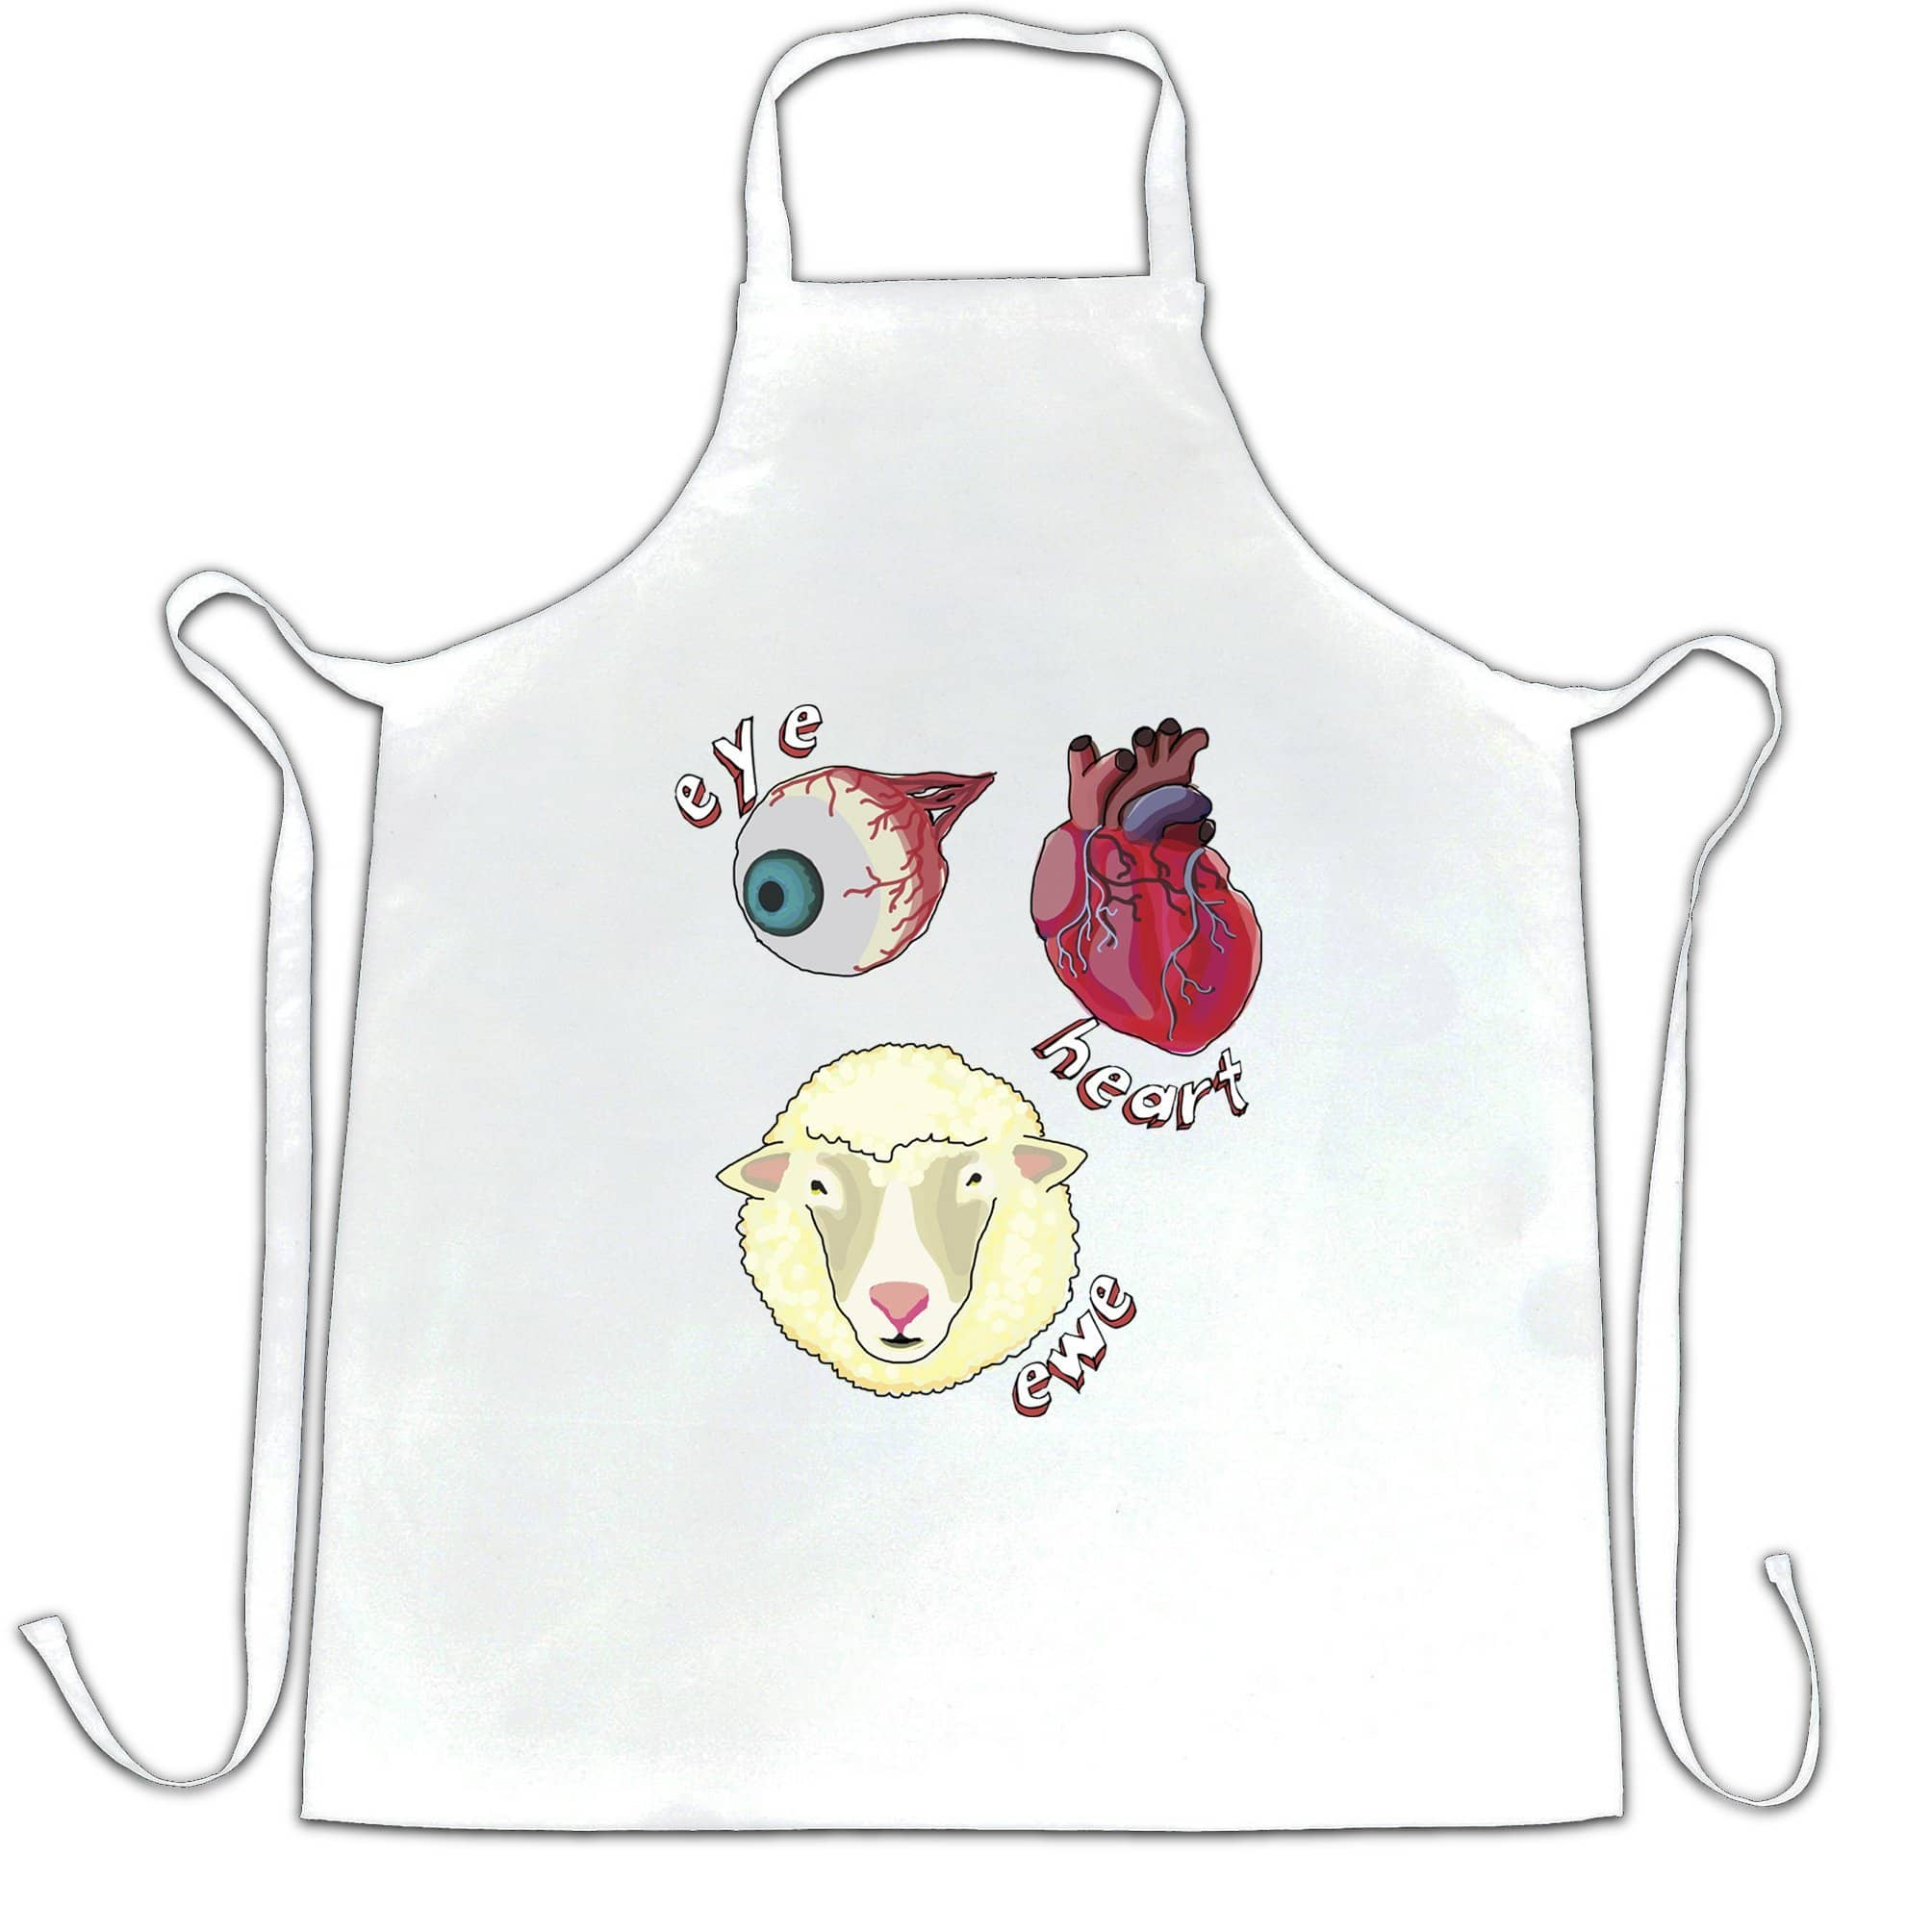 Creepy Chef's Apron Eye Heart Ewe I Heart You Pun